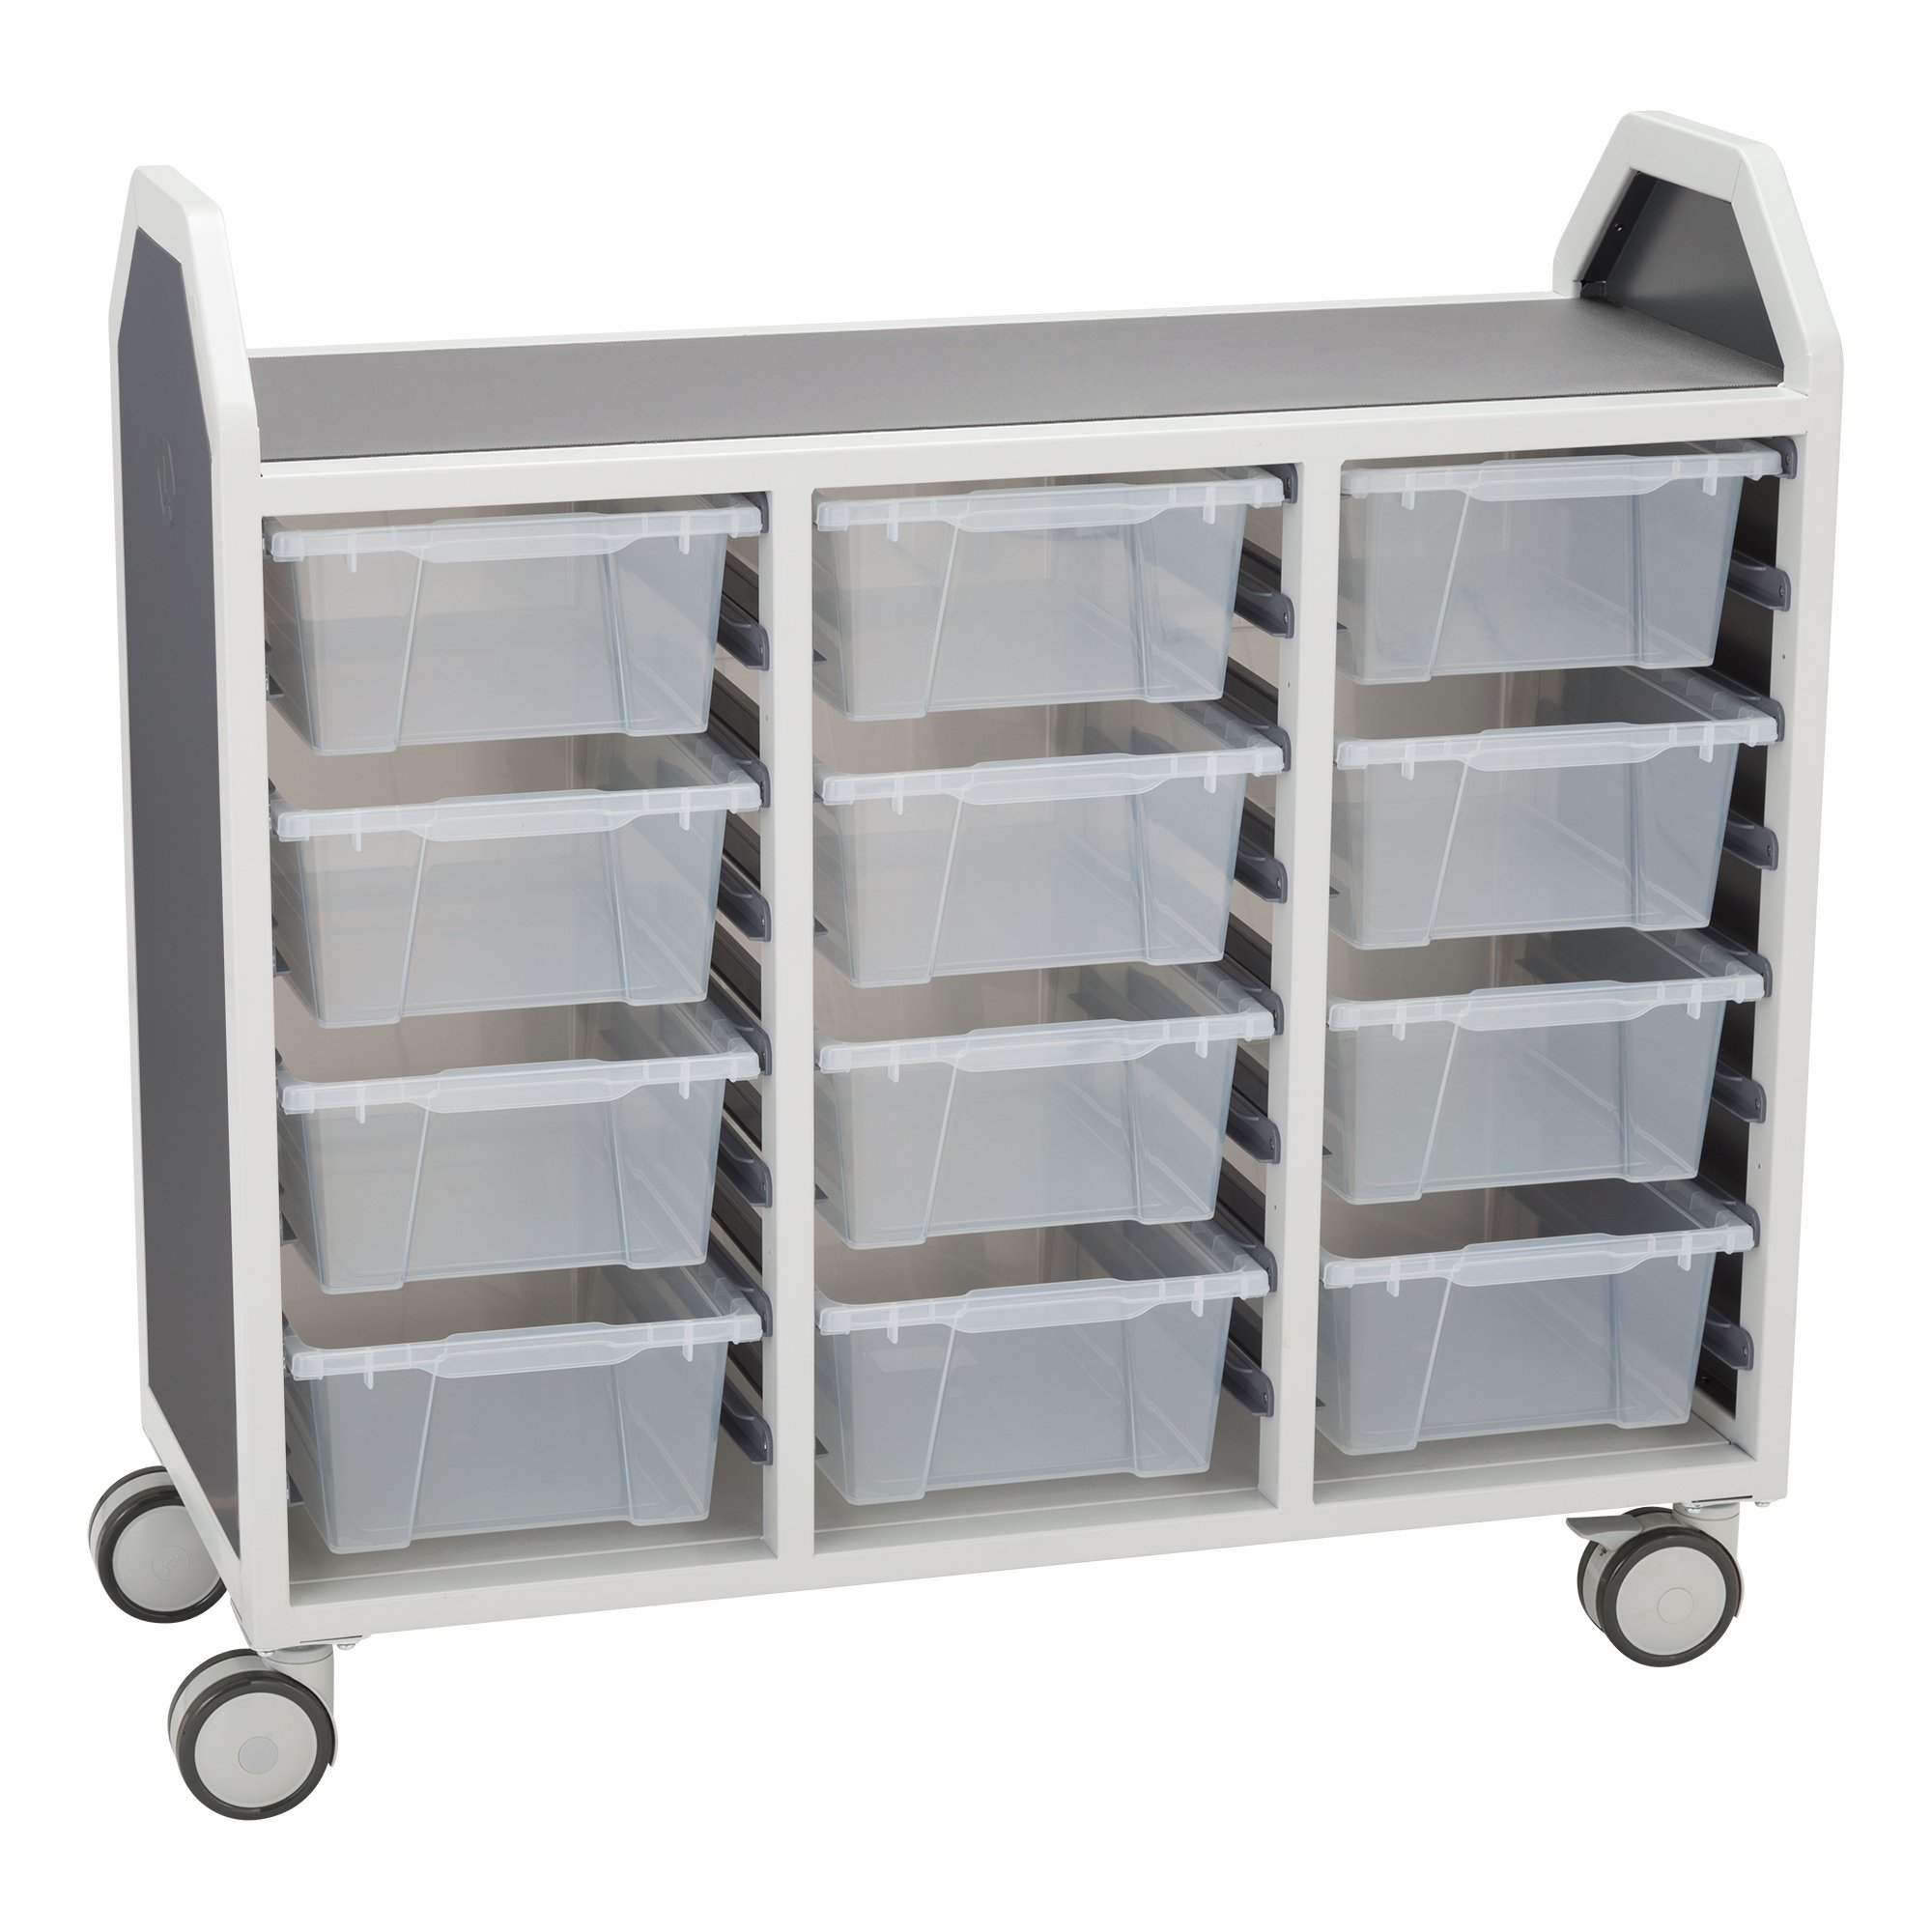 Learniture Profile Series Triple-Wide Mobile Classroom Storage Cart with 12 Large Bins, LNT-GNO3042-PKAL-SO